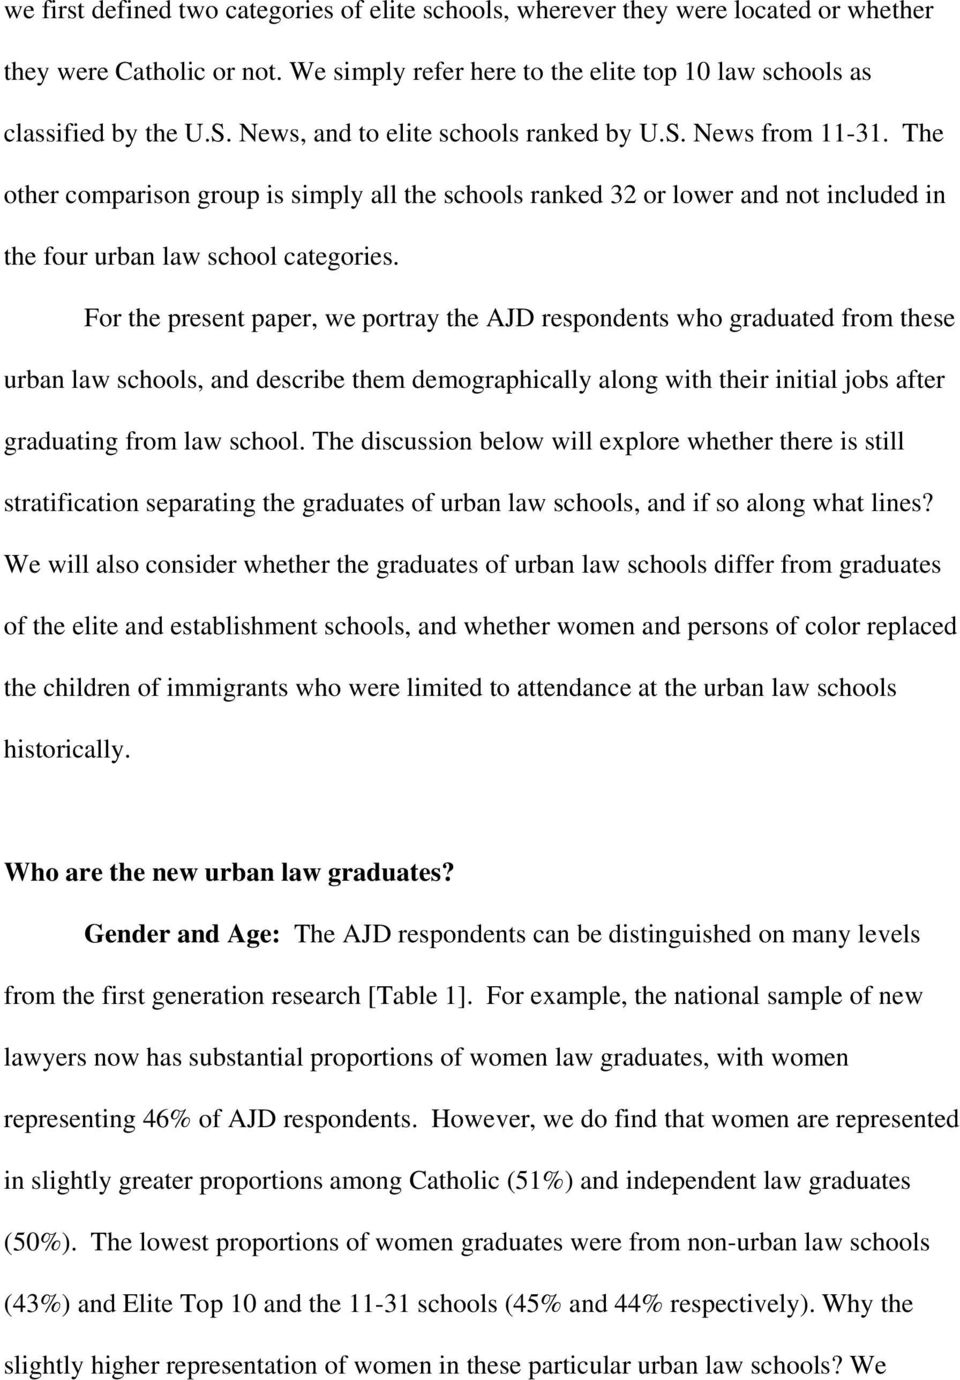 For the present paper, we portray the AJD respondents who graduated from these urban law schools, and describe them demographically along with their initial jobs after graduating from law school.